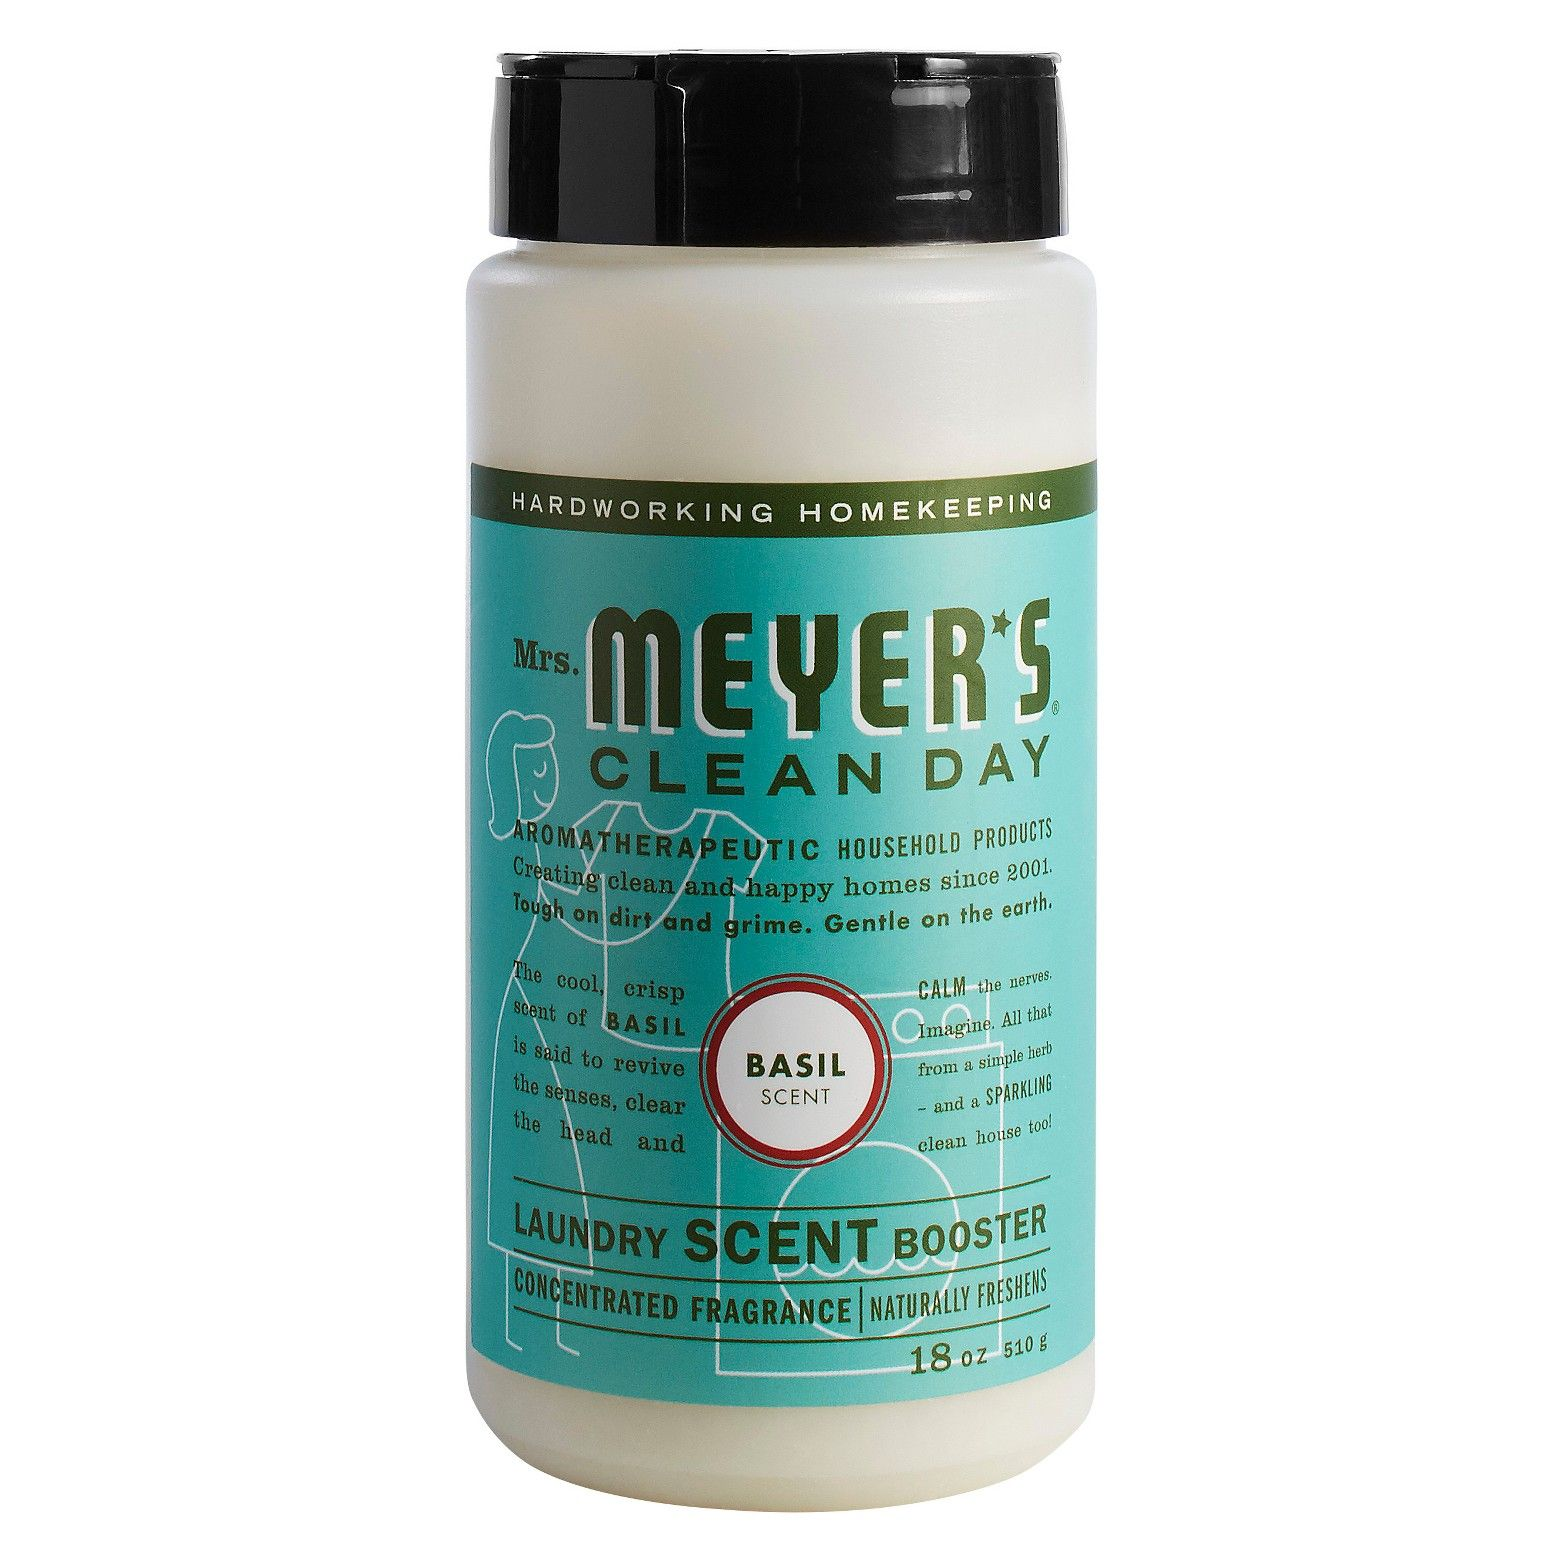 Mrs Meyer S Basil Scent Laundry Scent Booster 18oz Laundry